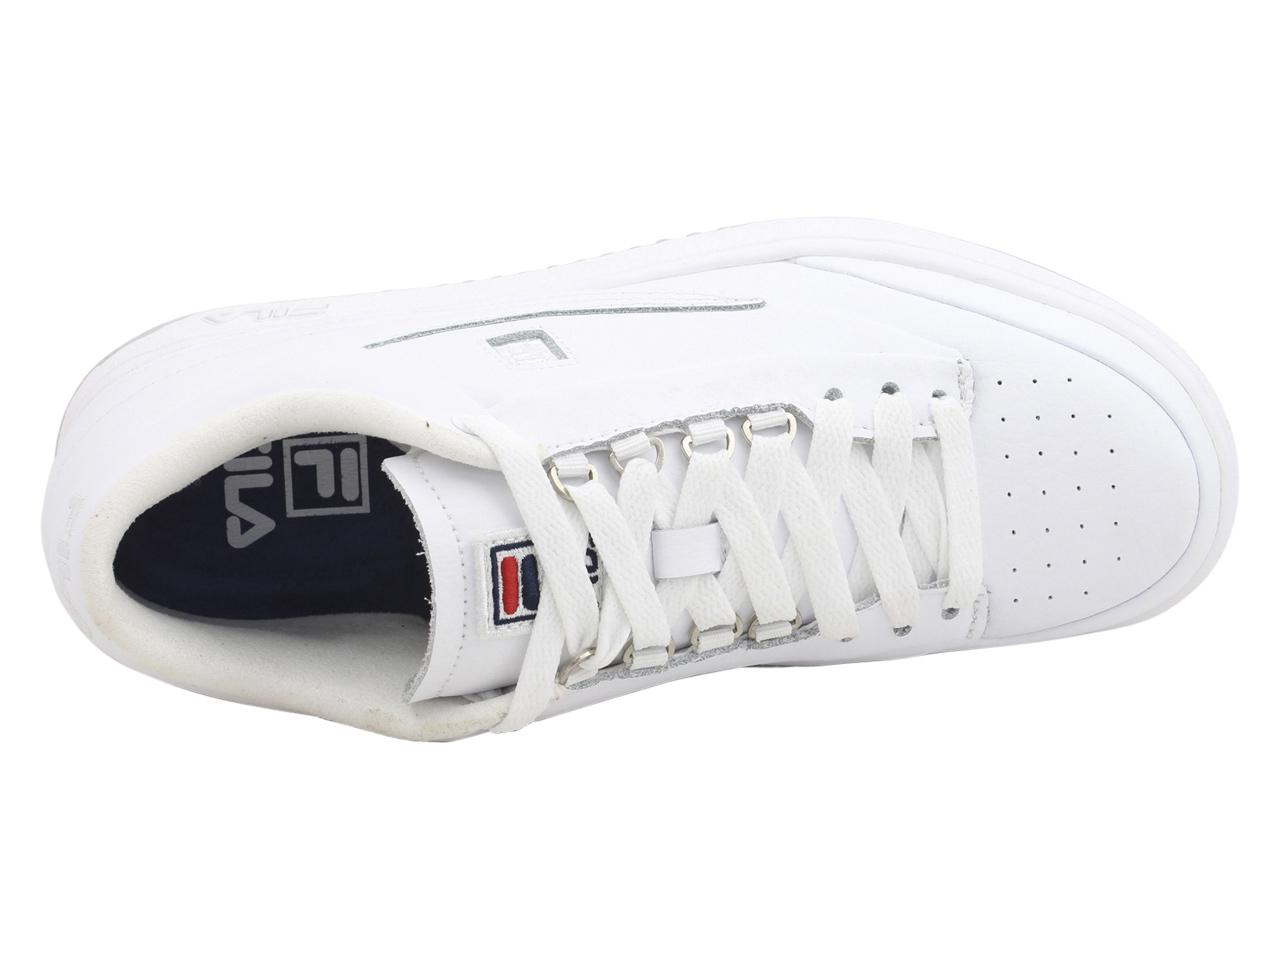 Mid-Premio High Top Sneakers Shoes